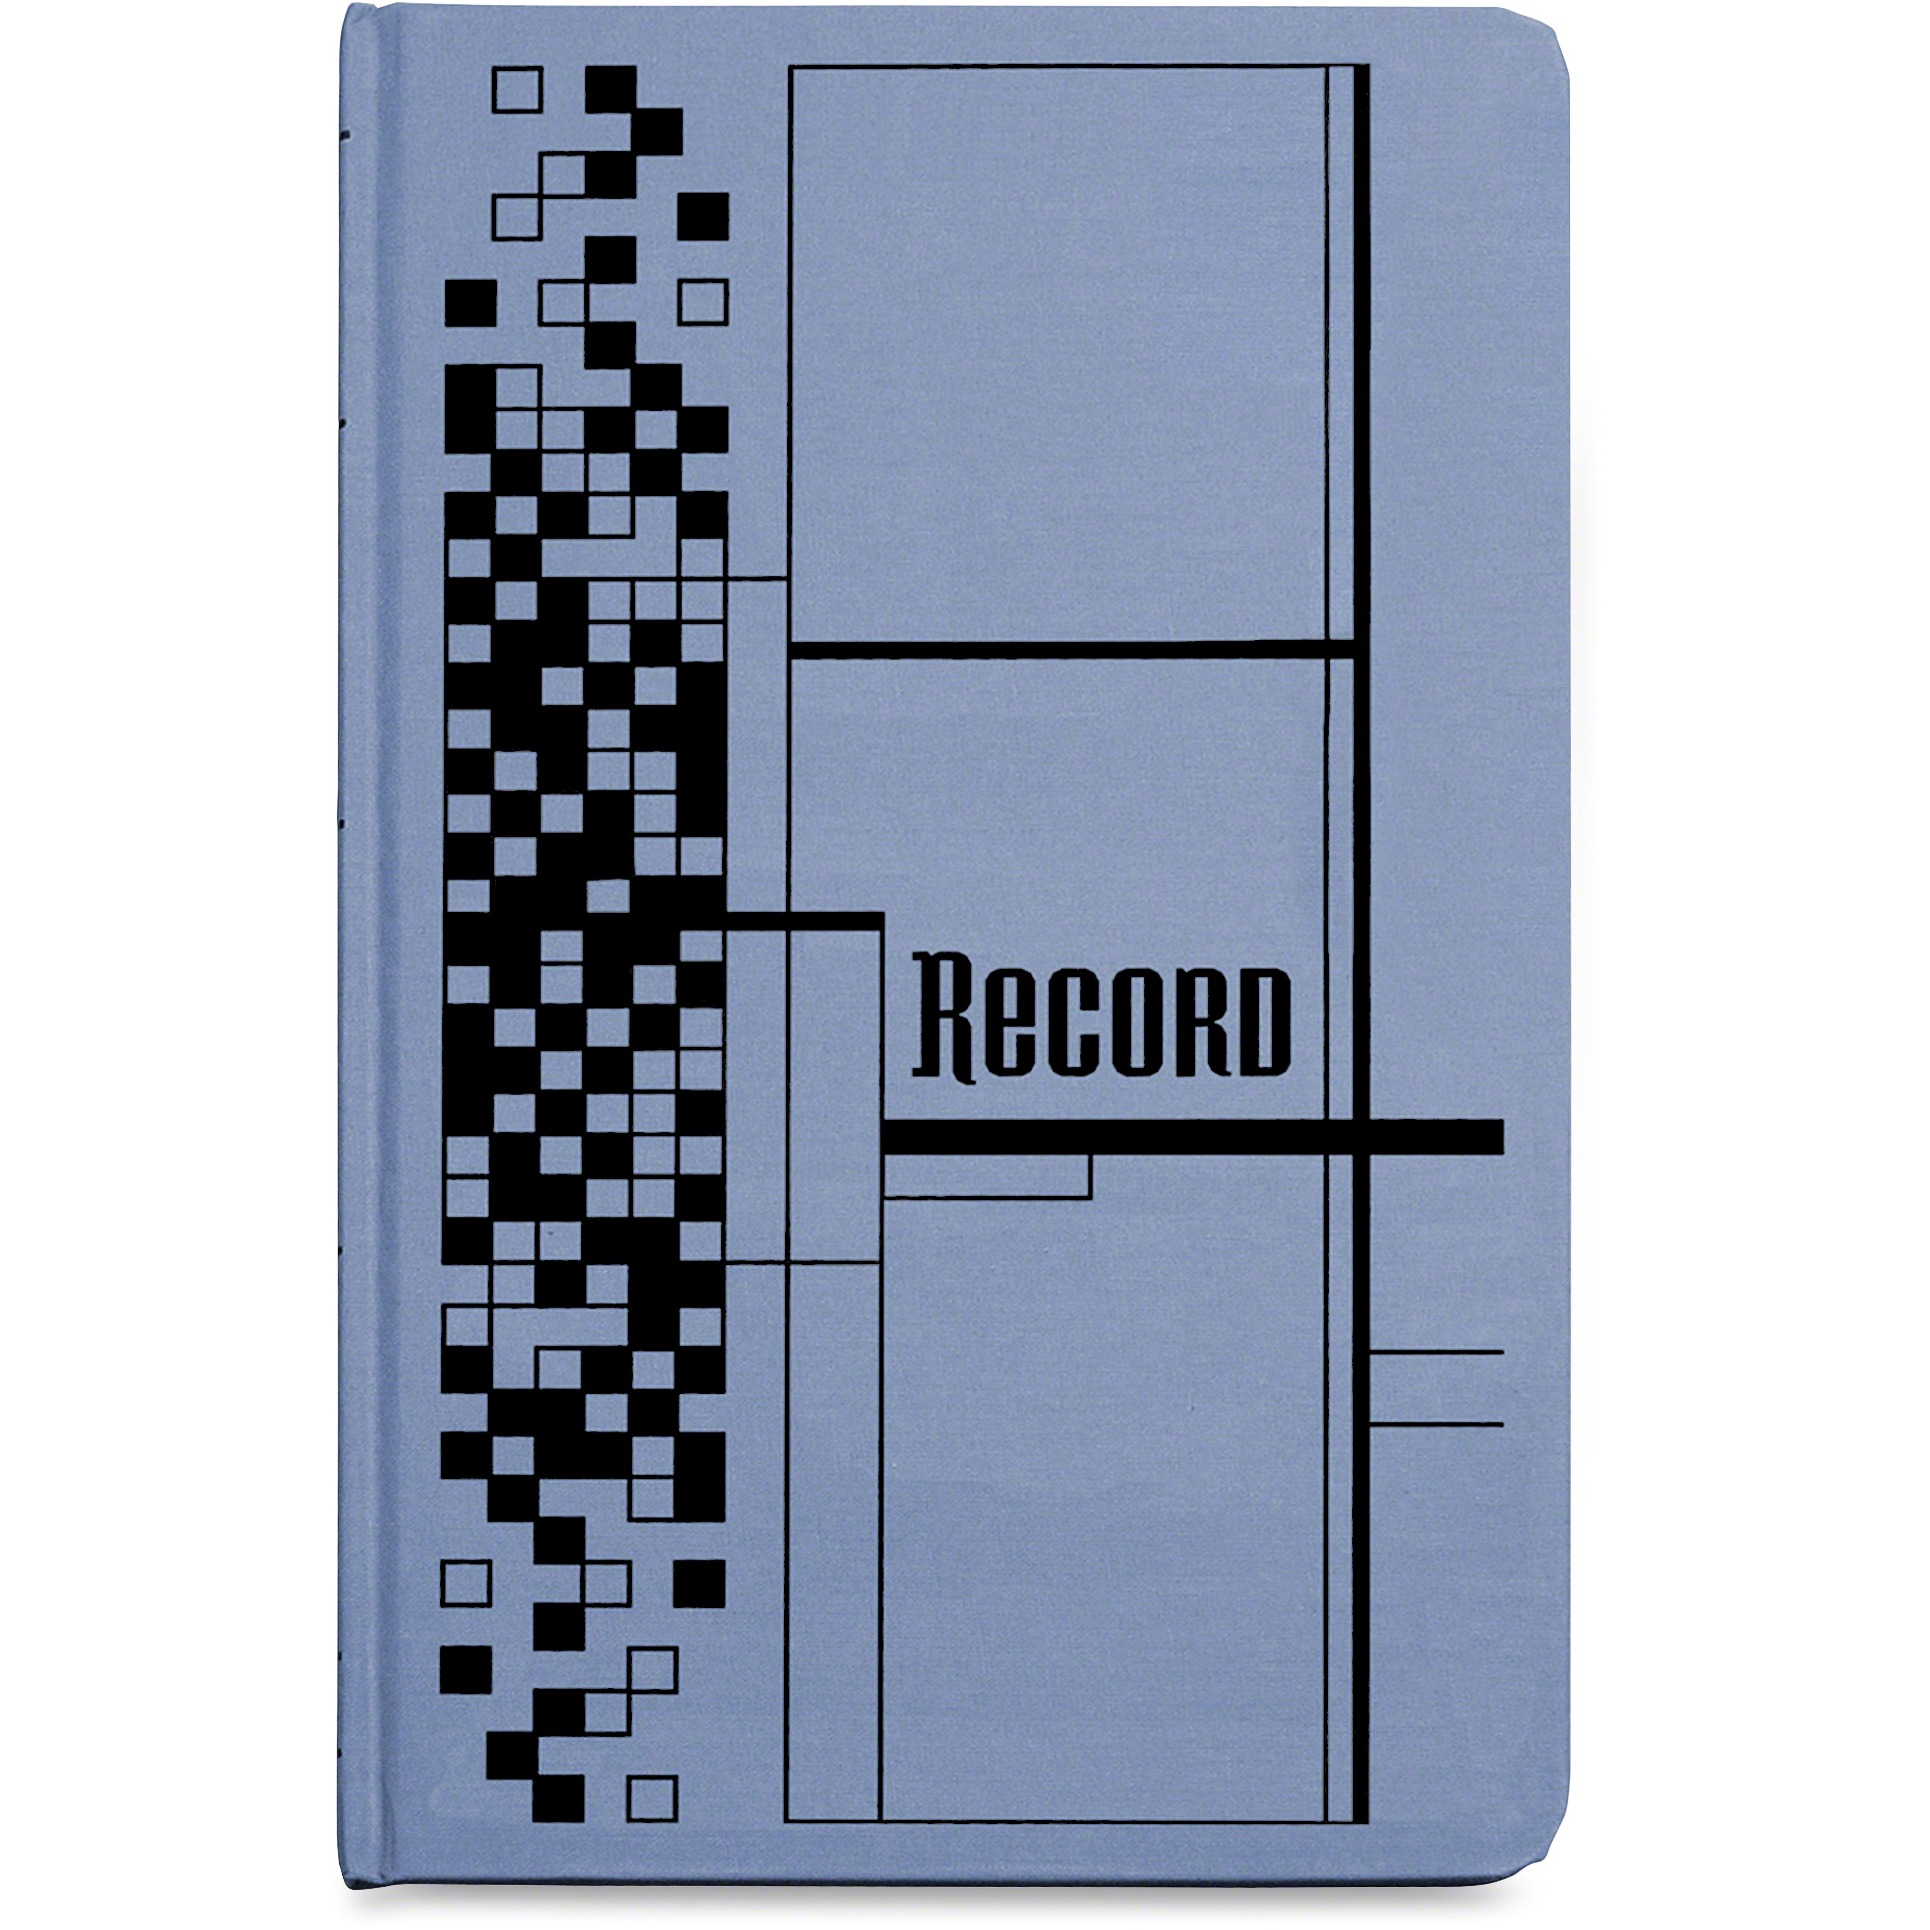 Adams Record Ledger Book, Blue Cloth Cover, 500 7 1 4 x 11 3 4 Pages by TOPS Products